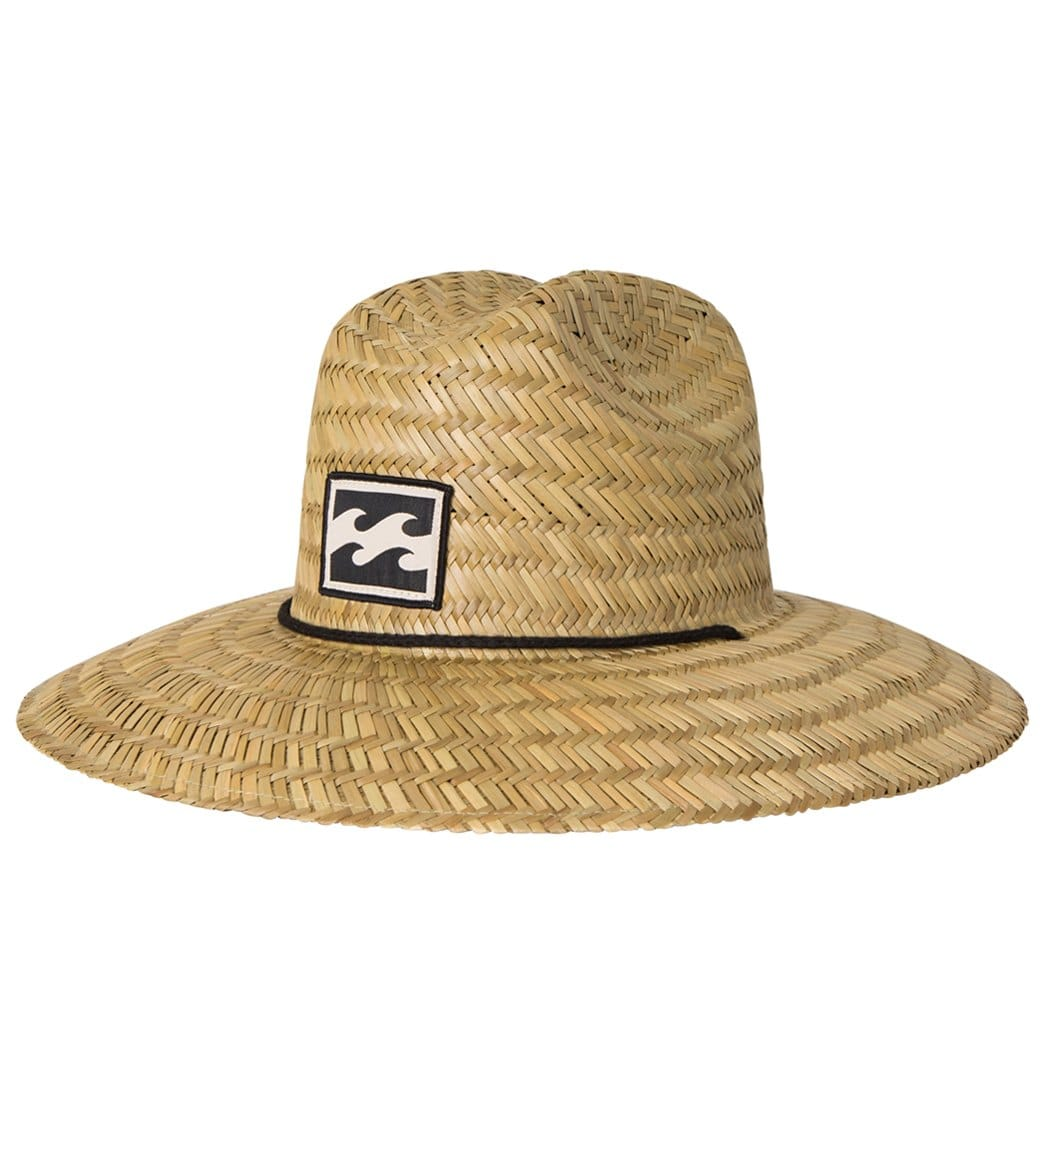 c69ab25eaa0aa Billabong Men s Tides Lifeguard Hat at SwimOutlet.com